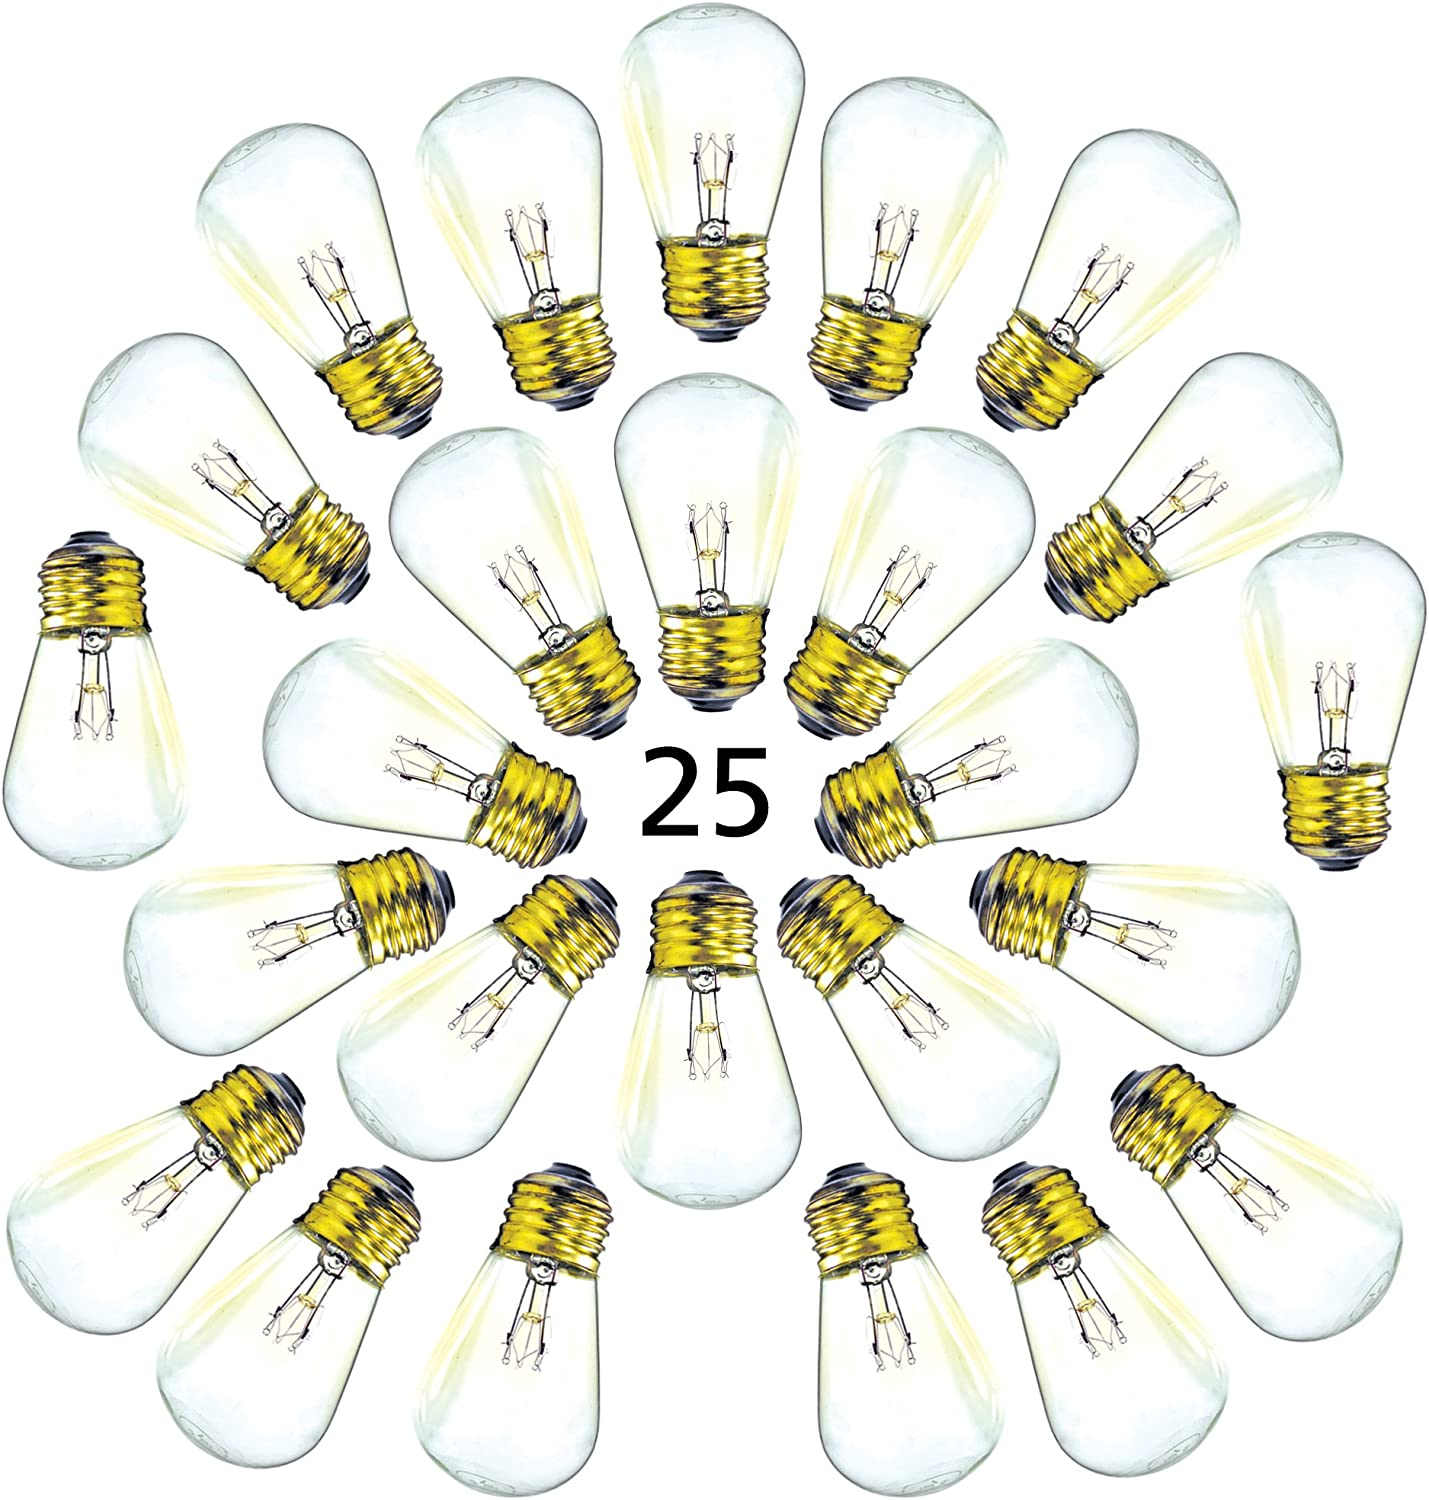 Replacement Bulbs S14 Commercial Grade String Light - 25 Pack - 1.5 Inch Candelabra Screw Base fits E27 and E26 Sockets